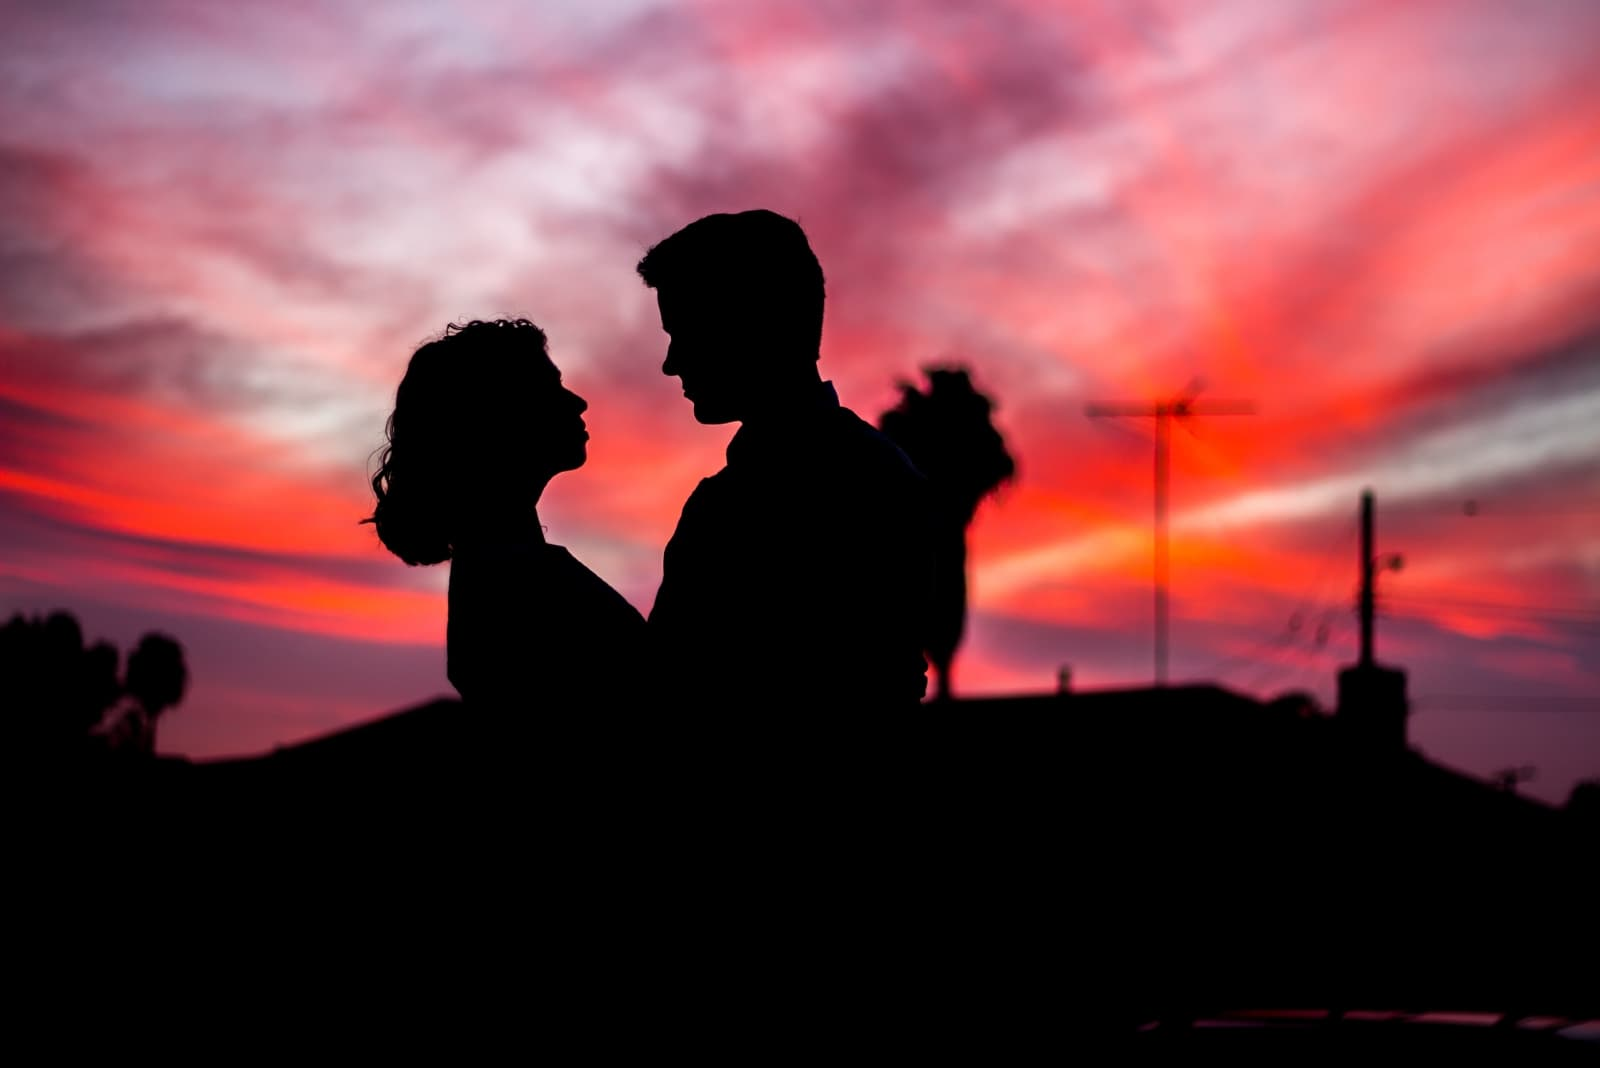 man and woman making eye contact during sunset